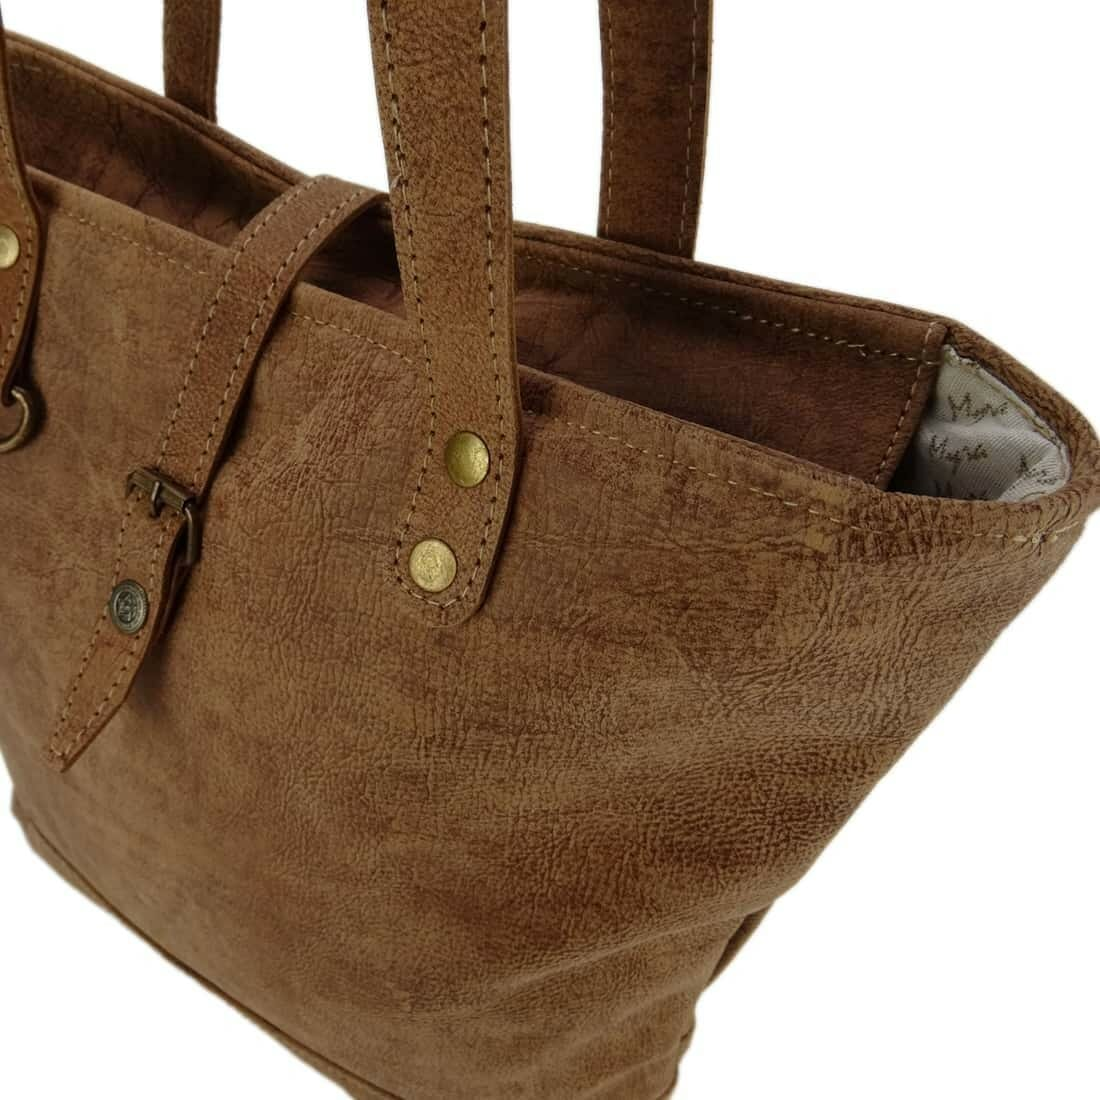 Myra Bag Leren Emma detail2